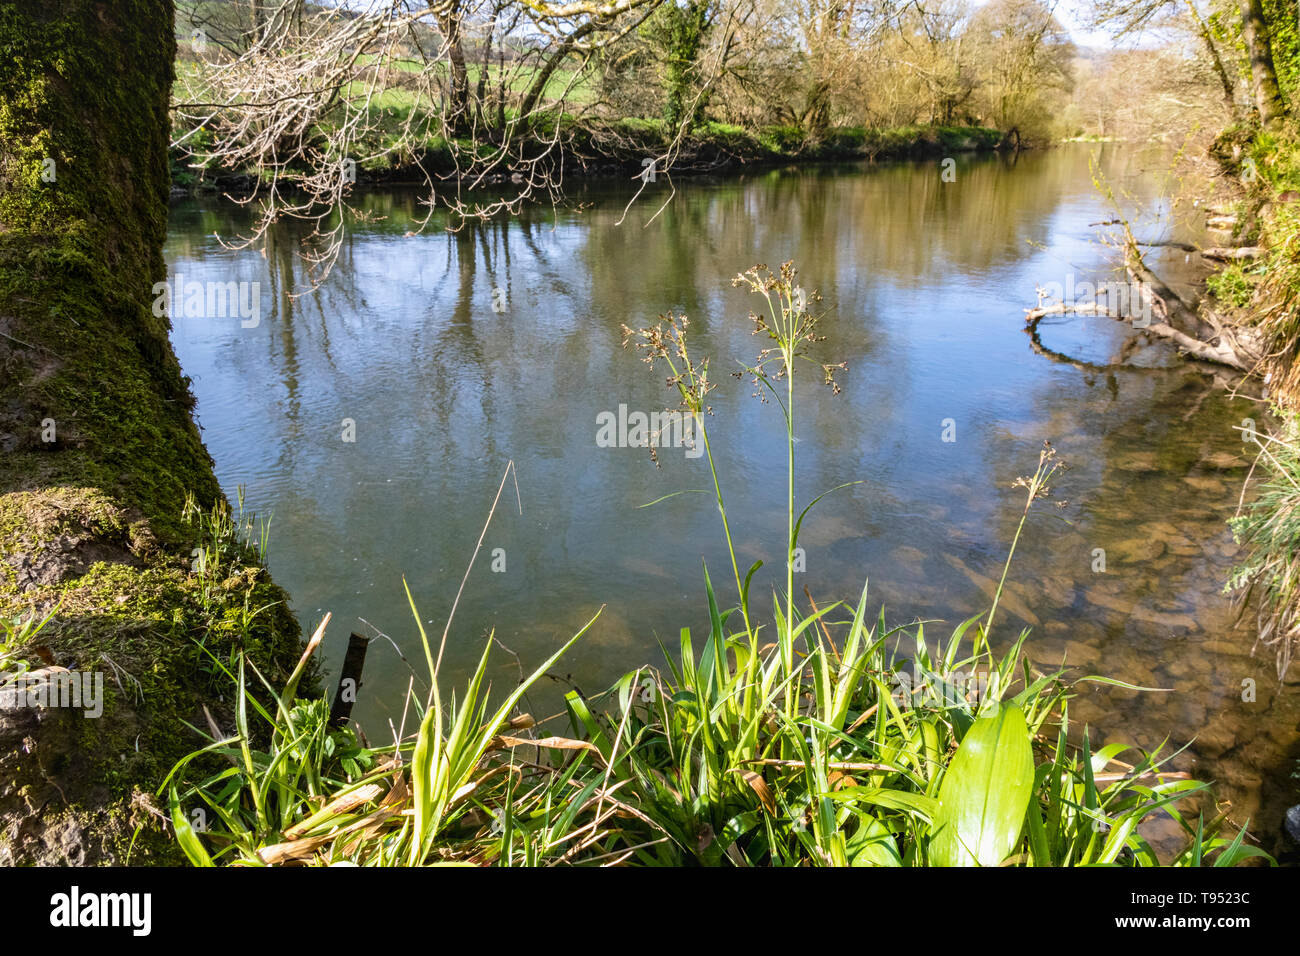 River Torridge: Early Spring View Looking DownRiver with Field WoodRush and Muted Reflections, River Torridge, Great Torrington, Devon, England. - Stock Image